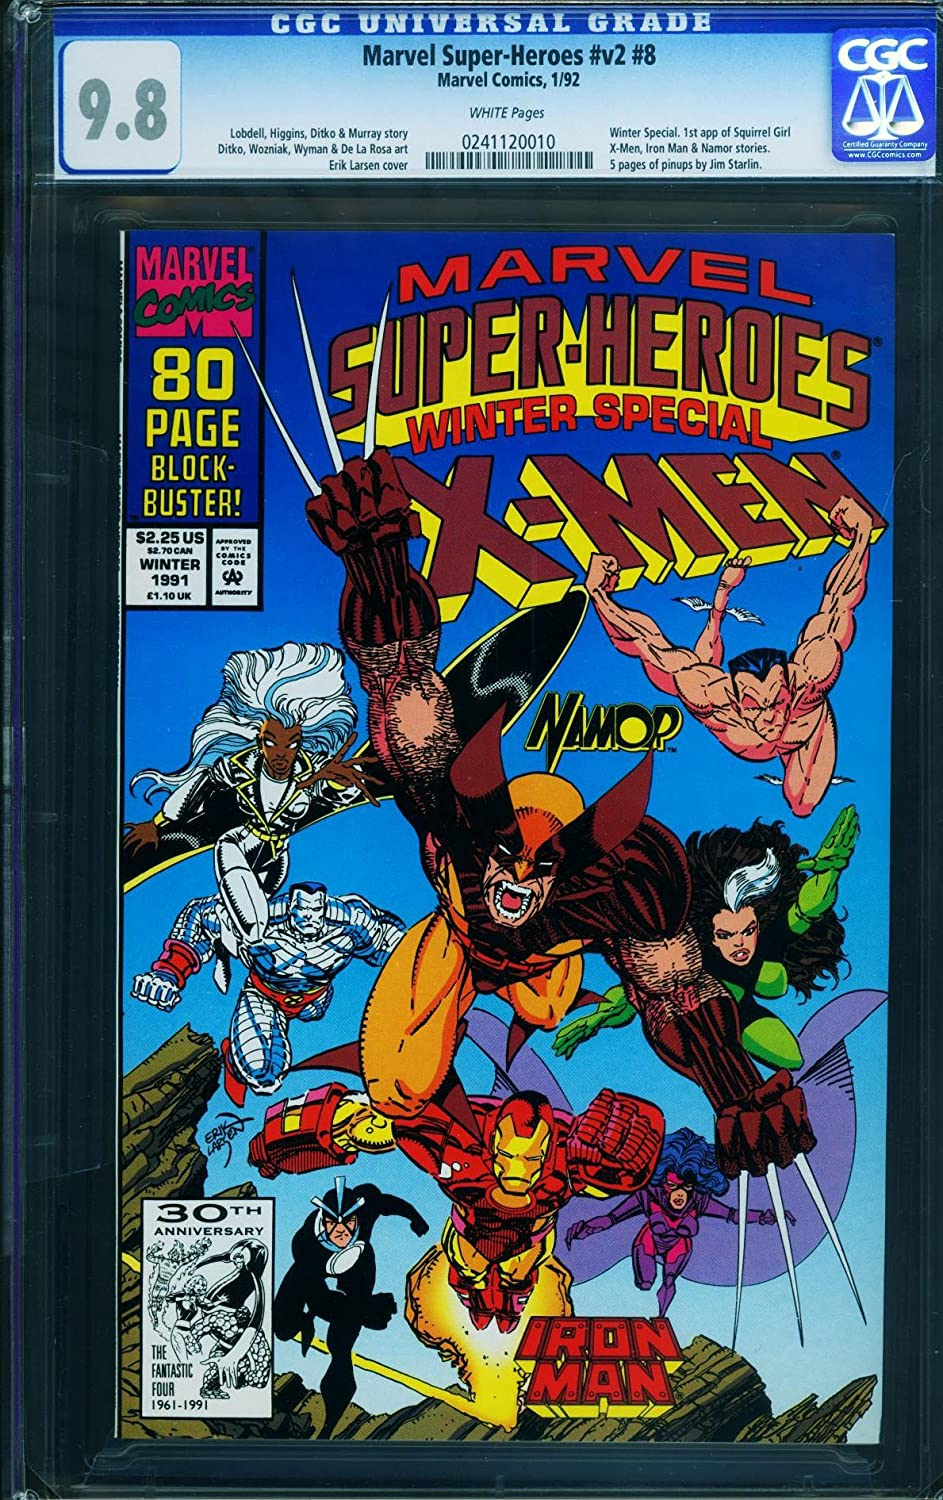 Marvel Super-Heroes Vol. 2 #8 Cgc 9.8-wp-Winter Special1991-First Squirrel Girl voet biochemistry plus 1991 supplement wie 2 vol set